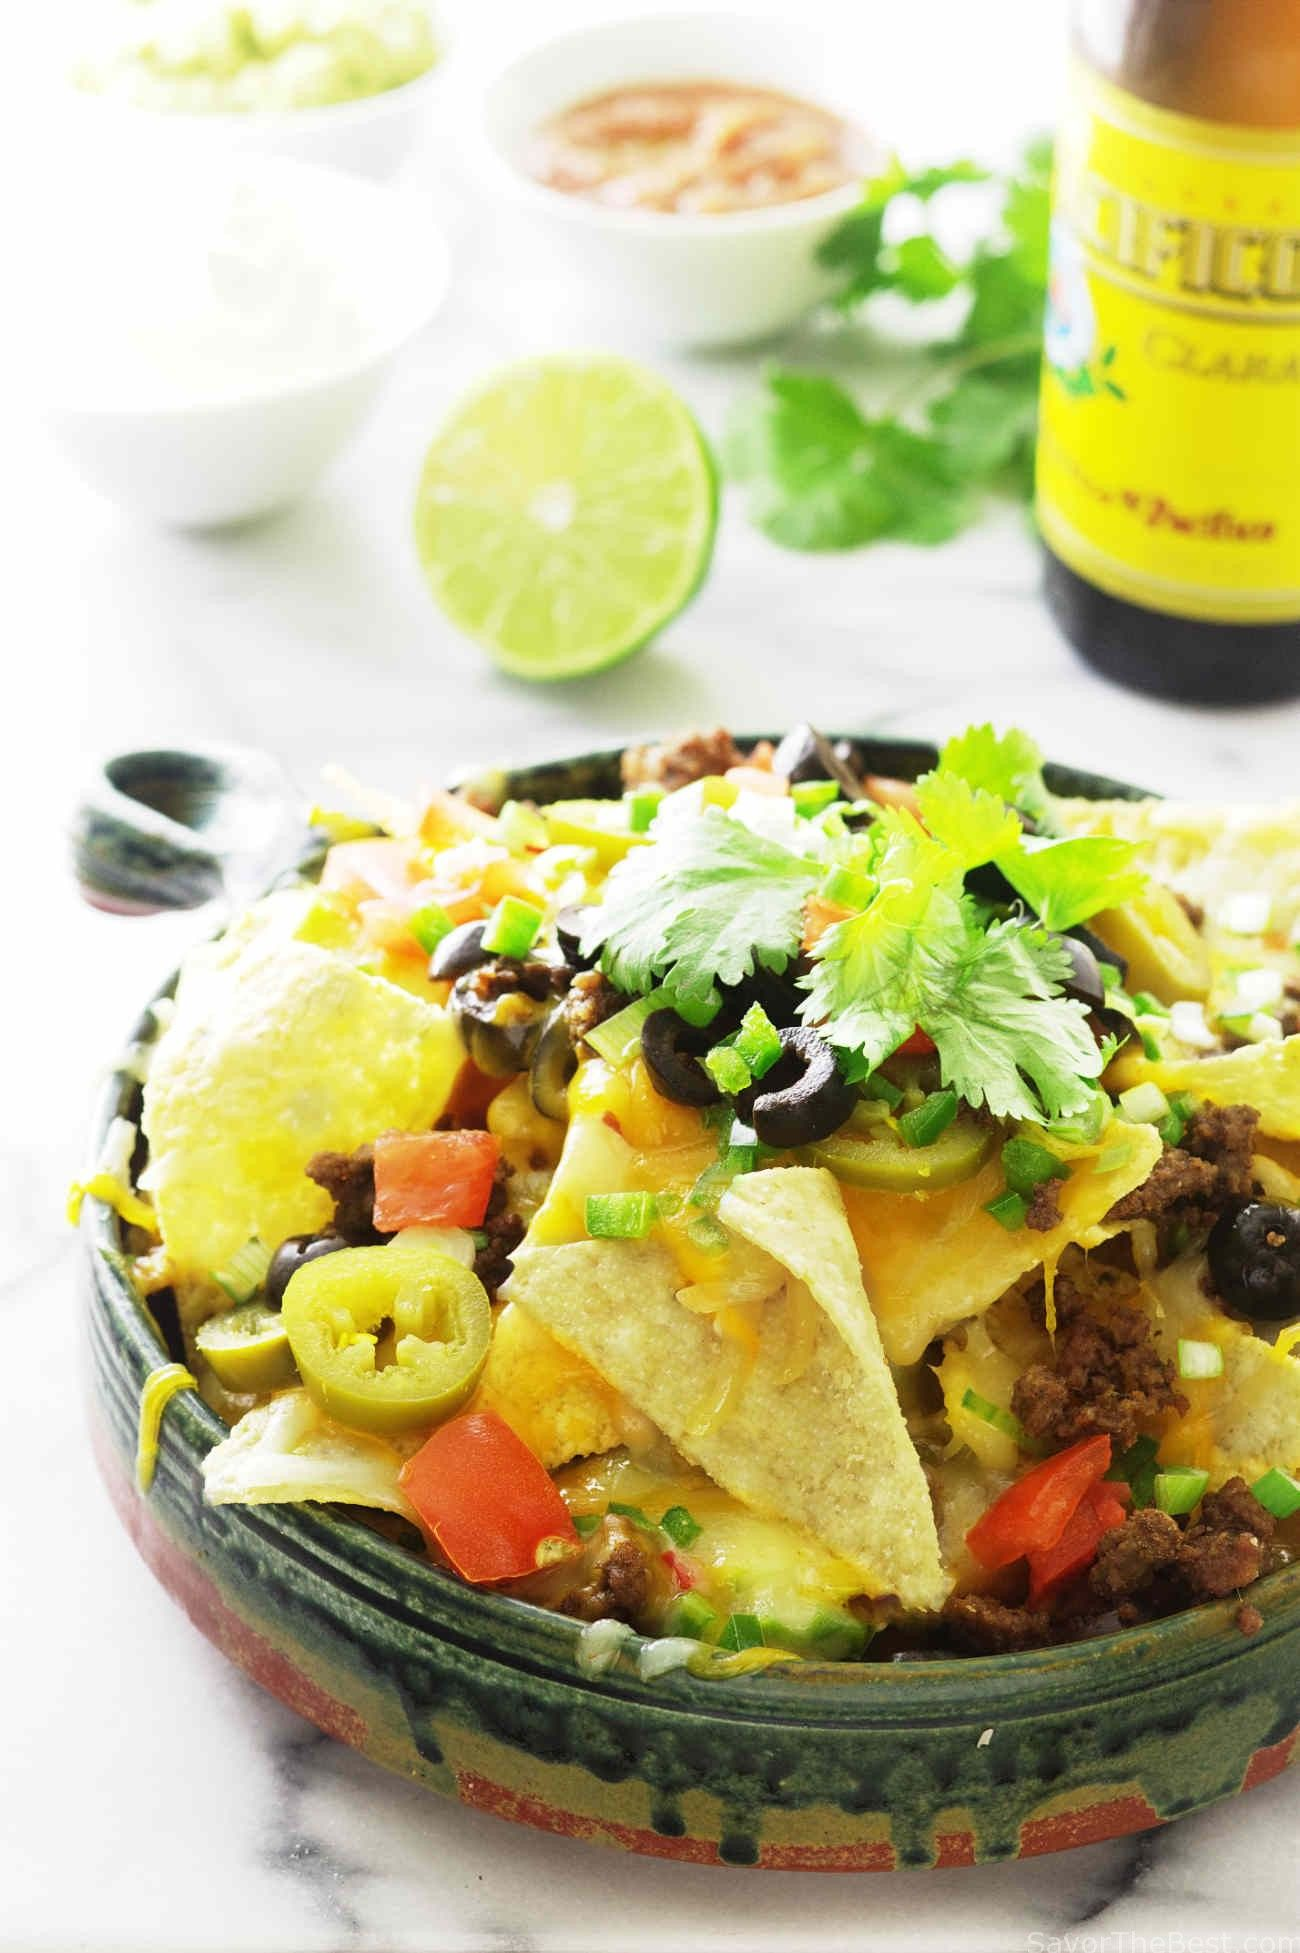 Serve up this plate of kamut chip spicy nachos with side dippers of guacamole, sour cream and salsa. These nachos are spicy, crunchy, cheesy and delicious.